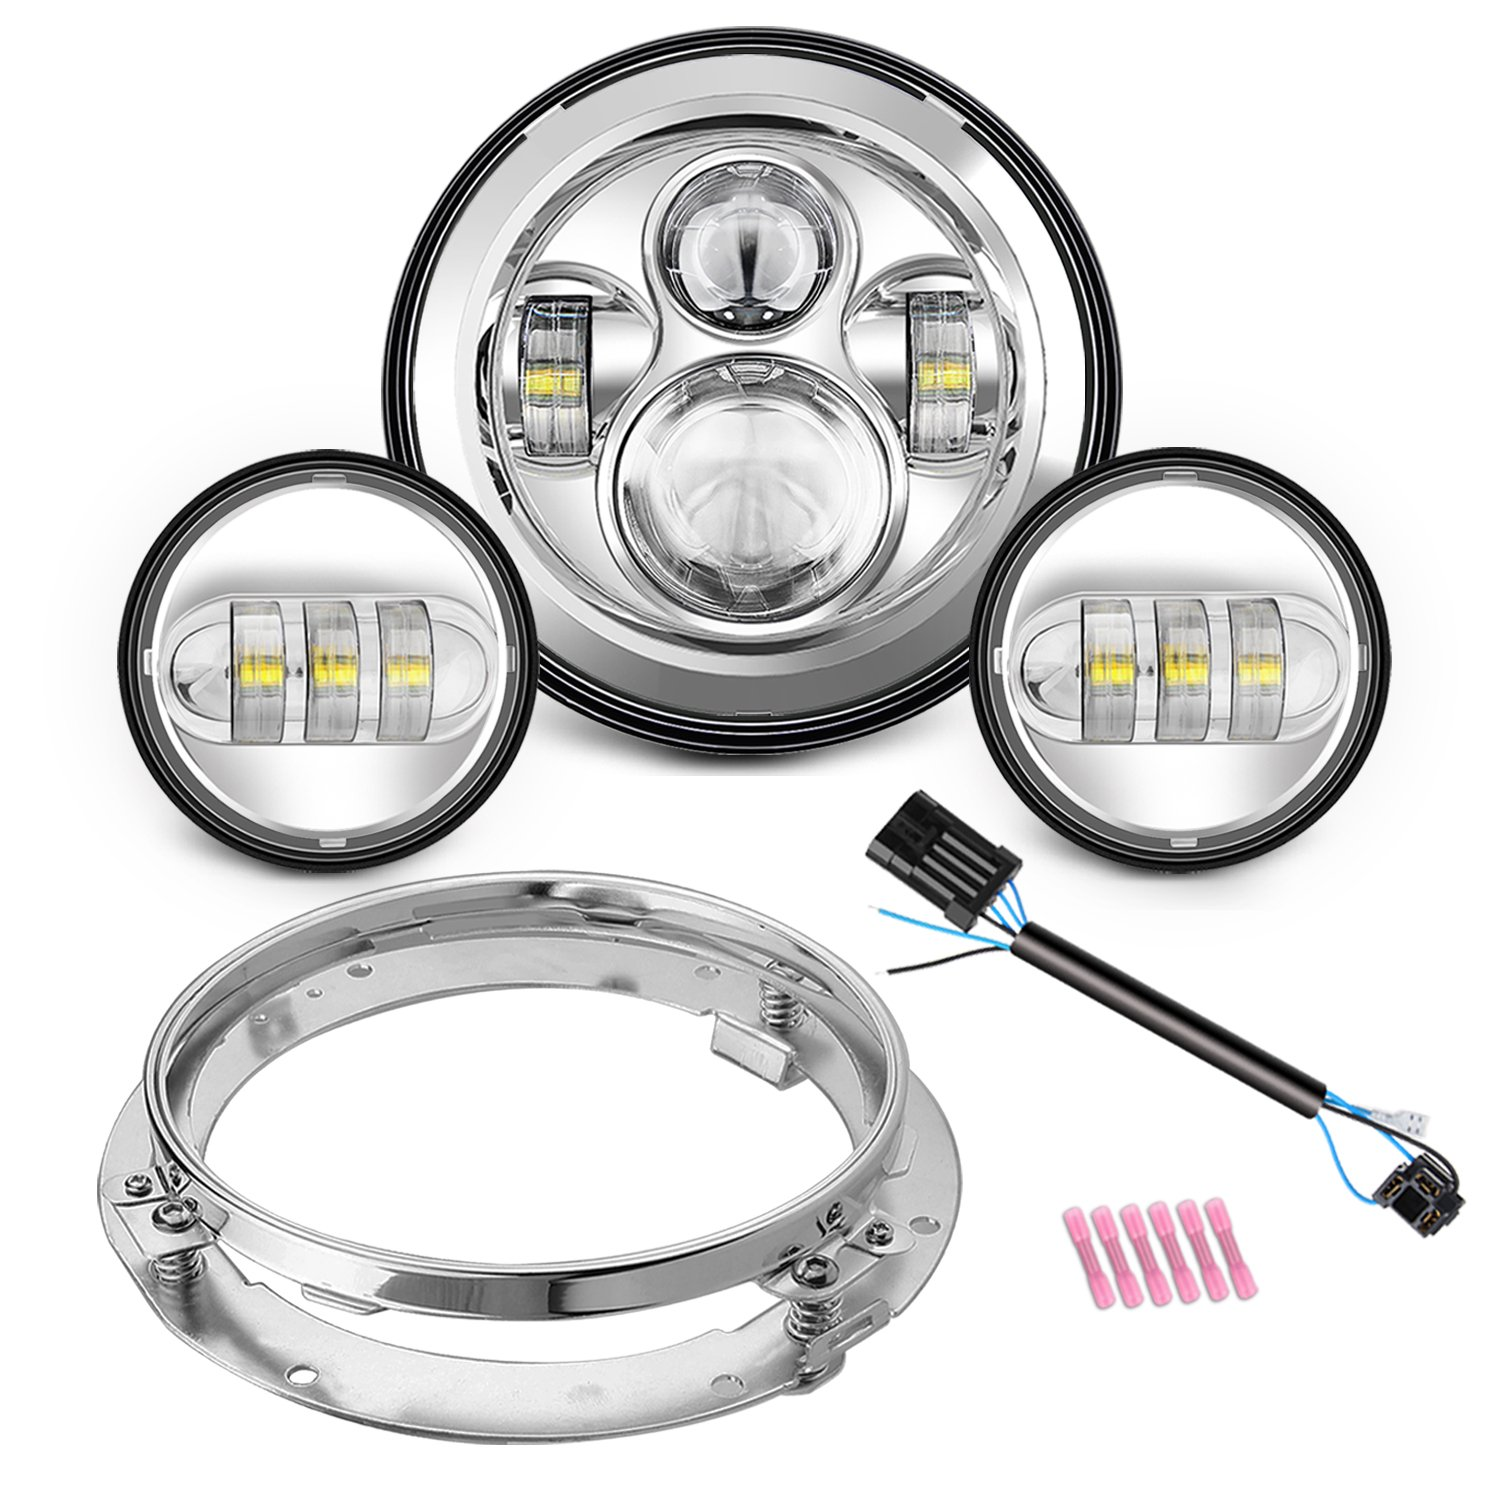 Motorcycle 7'' Daymaker LED Headlight for Harley Davidson Road King, Road Glide, Street Glide and Electra Glide,Ultra Limited with 4-1/2 LED Passing Lamps Fog Lights and Bracket Mounting Ring